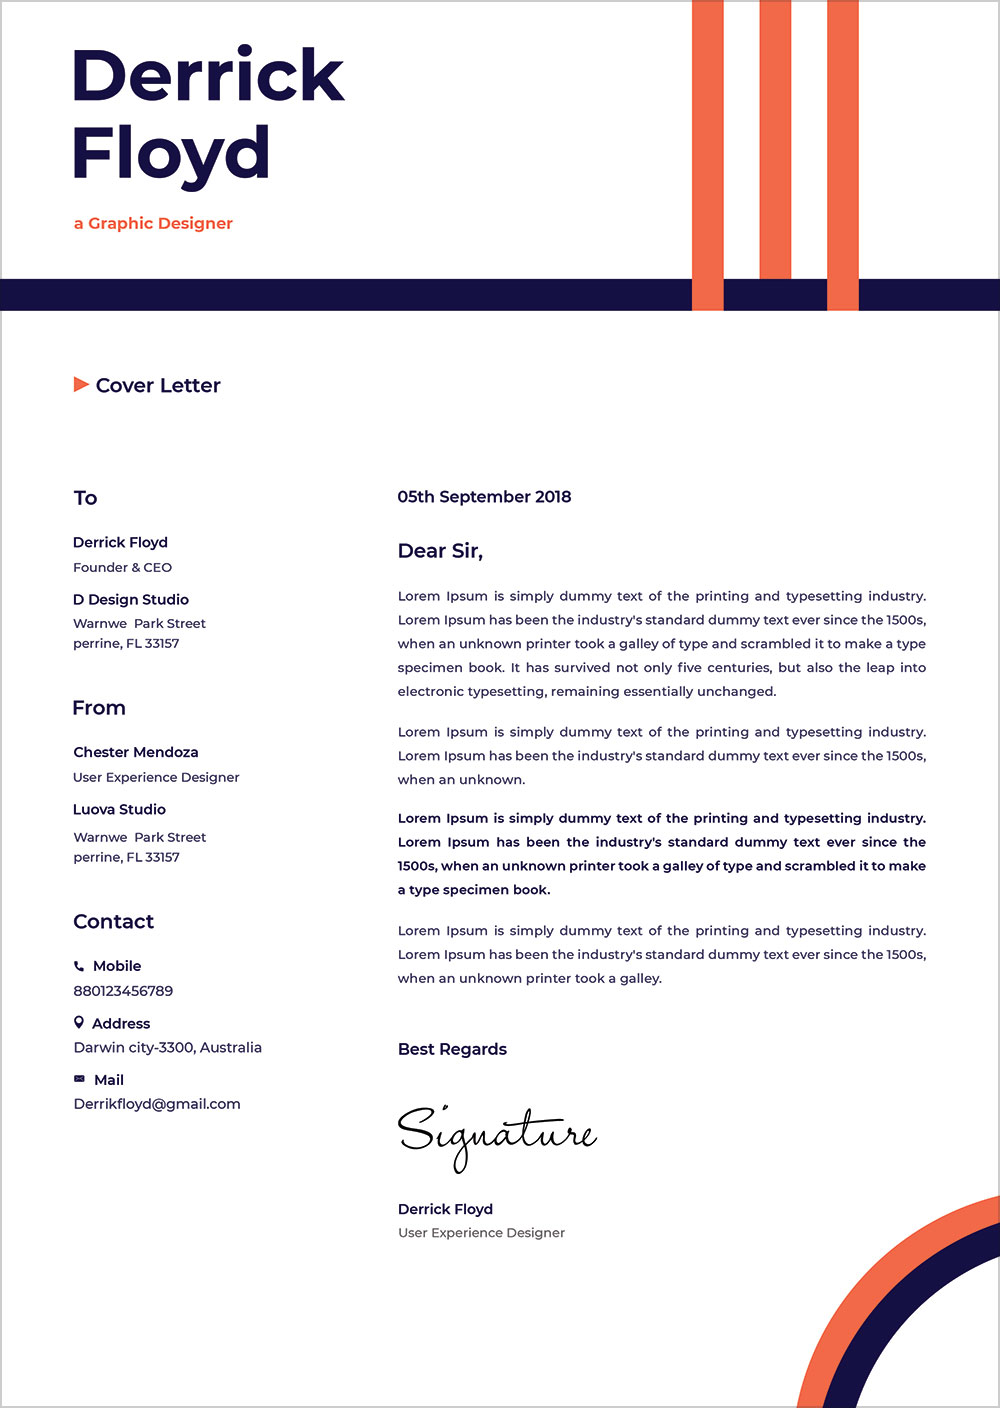 Free-Professional-CV-Resume-Template-&-Cover-Letter-in-Word,-PSD,-Sketch-&-XD